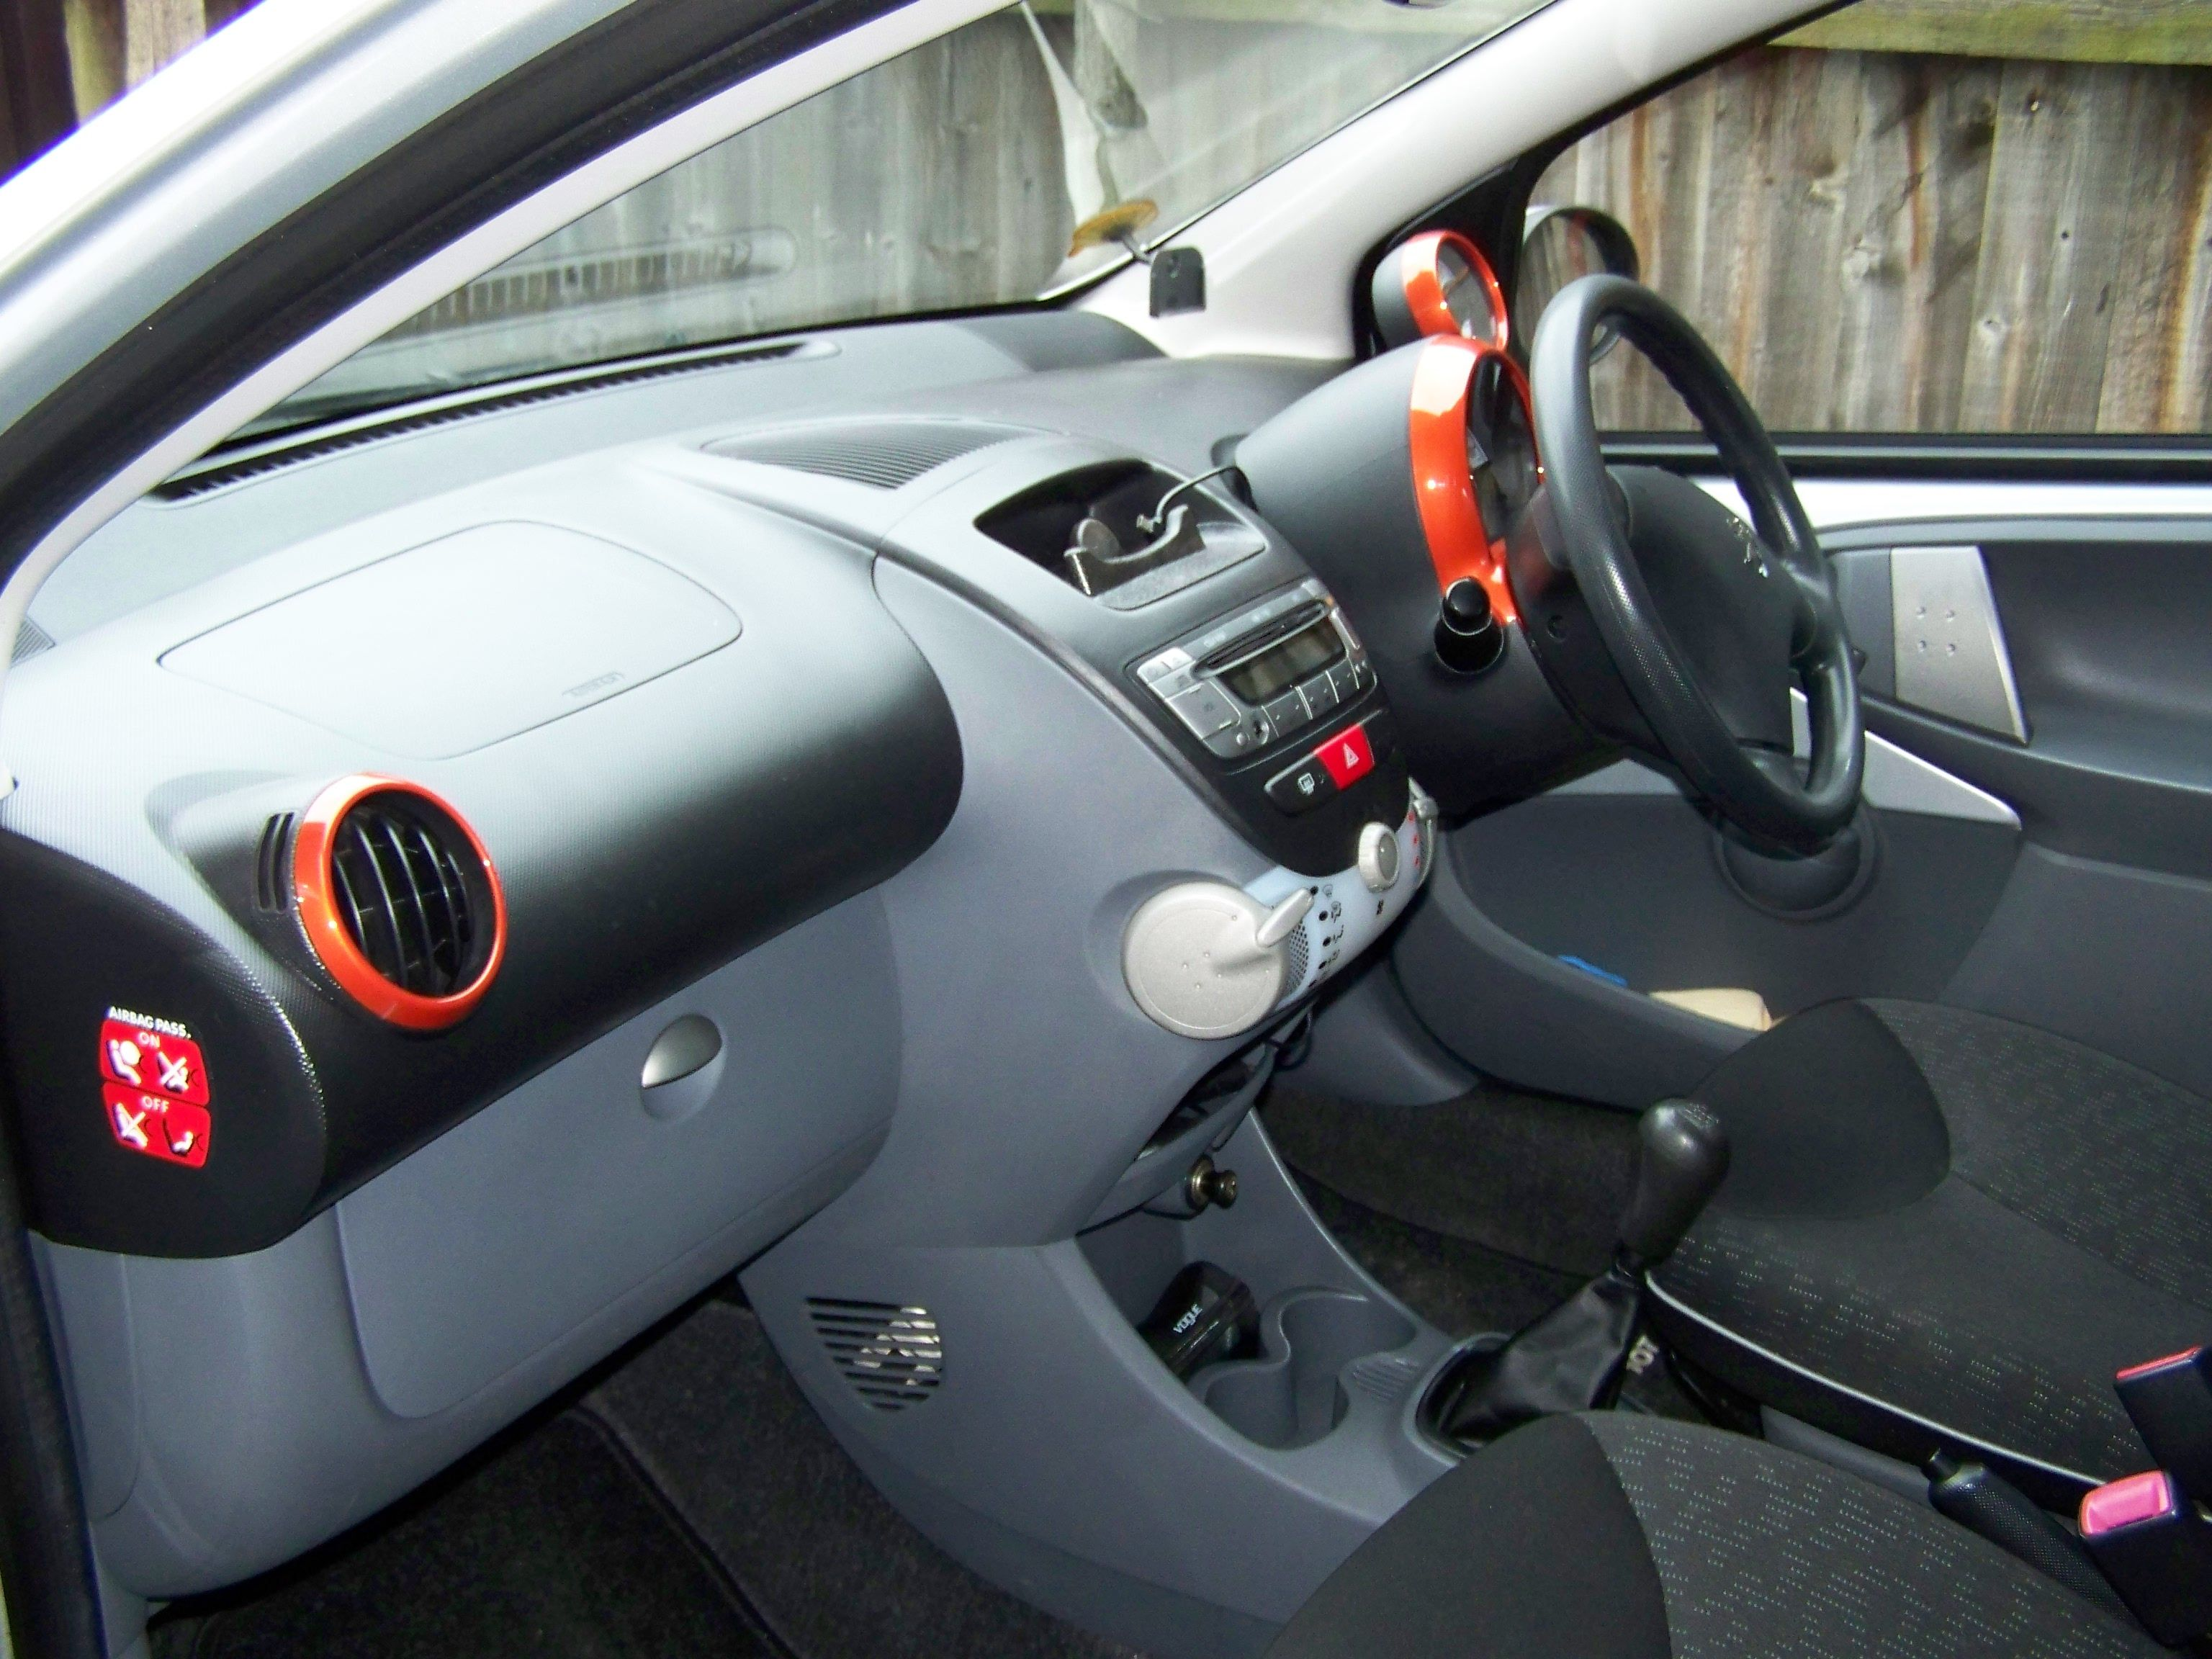 peugeot 107 new interior glove box cover and colour coded vents speedo cover rev counter. Black Bedroom Furniture Sets. Home Design Ideas